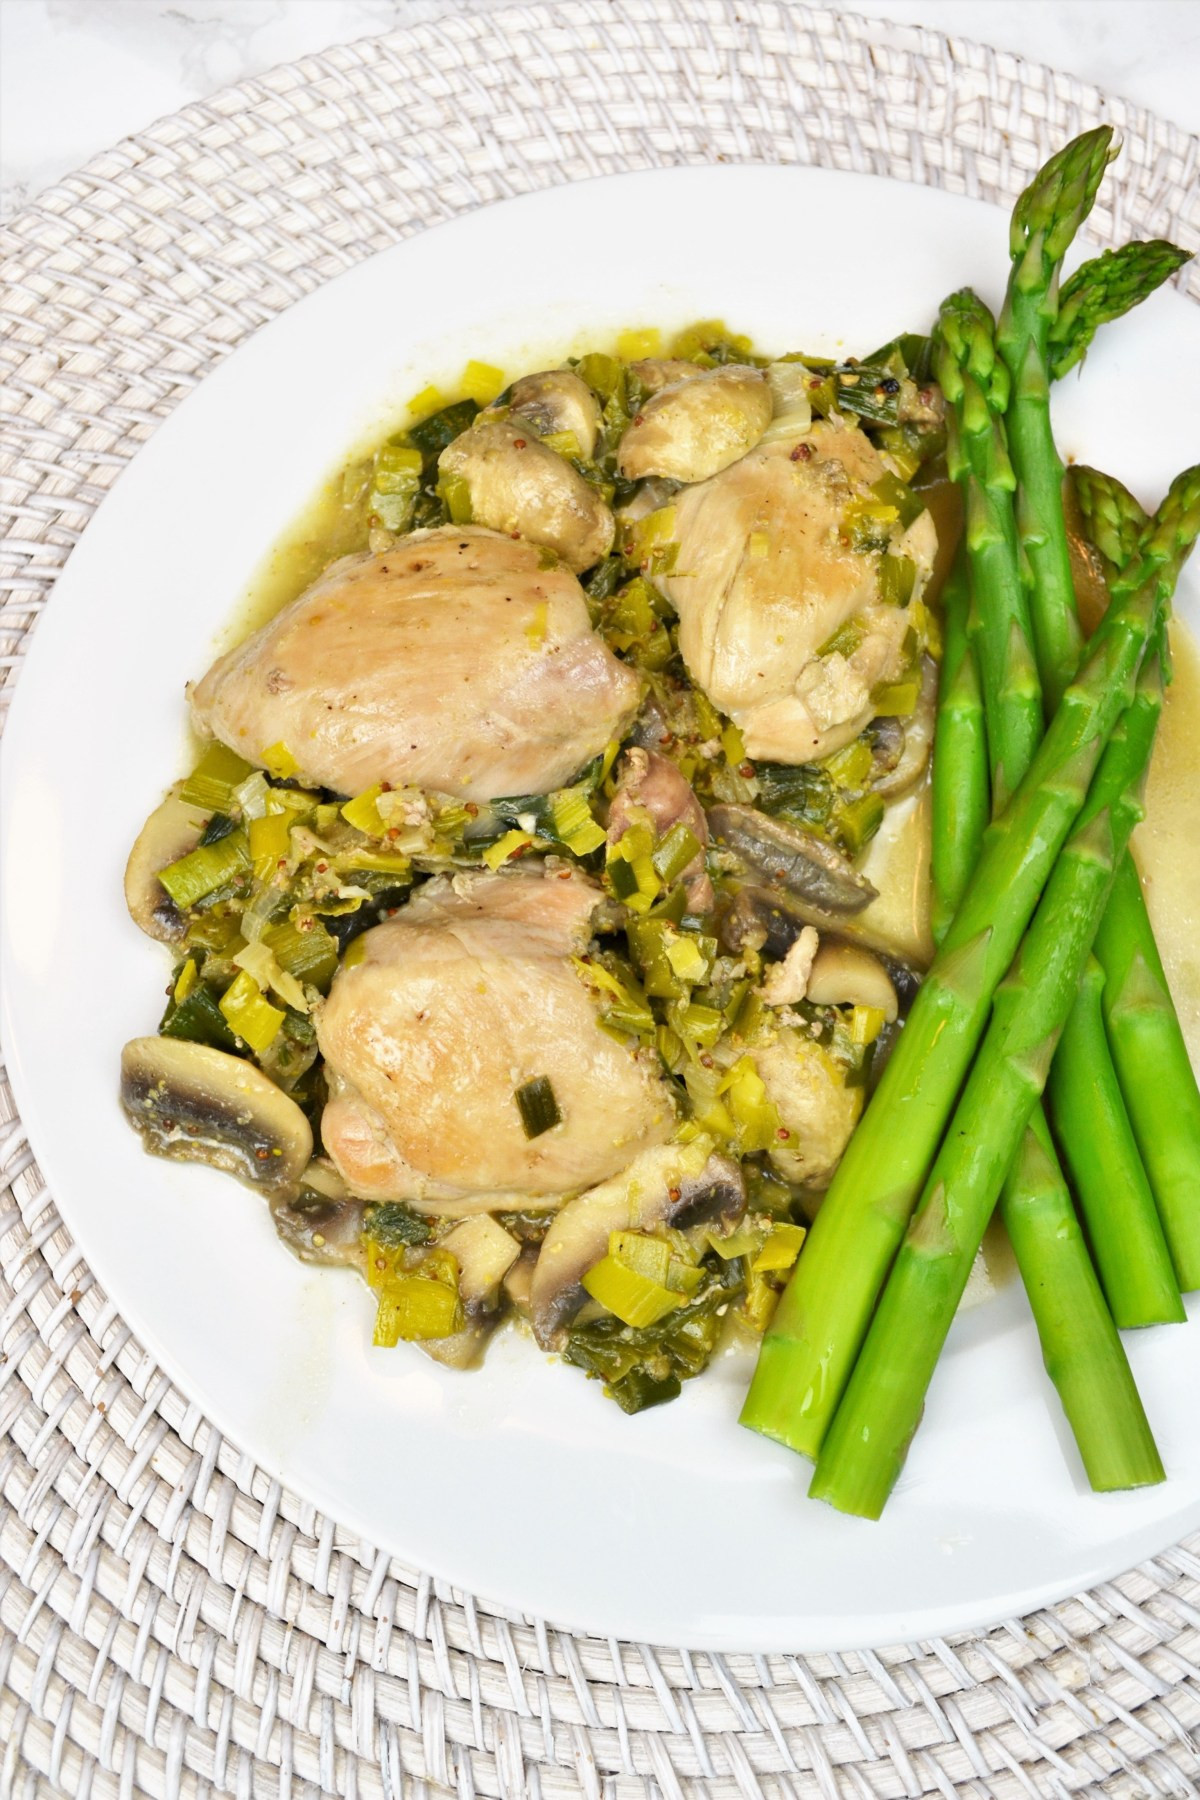 Healthy Mushroom Recipes For Weight Loss  Healthy Mushroom Leek and Chicken Thigh Recipe Weight